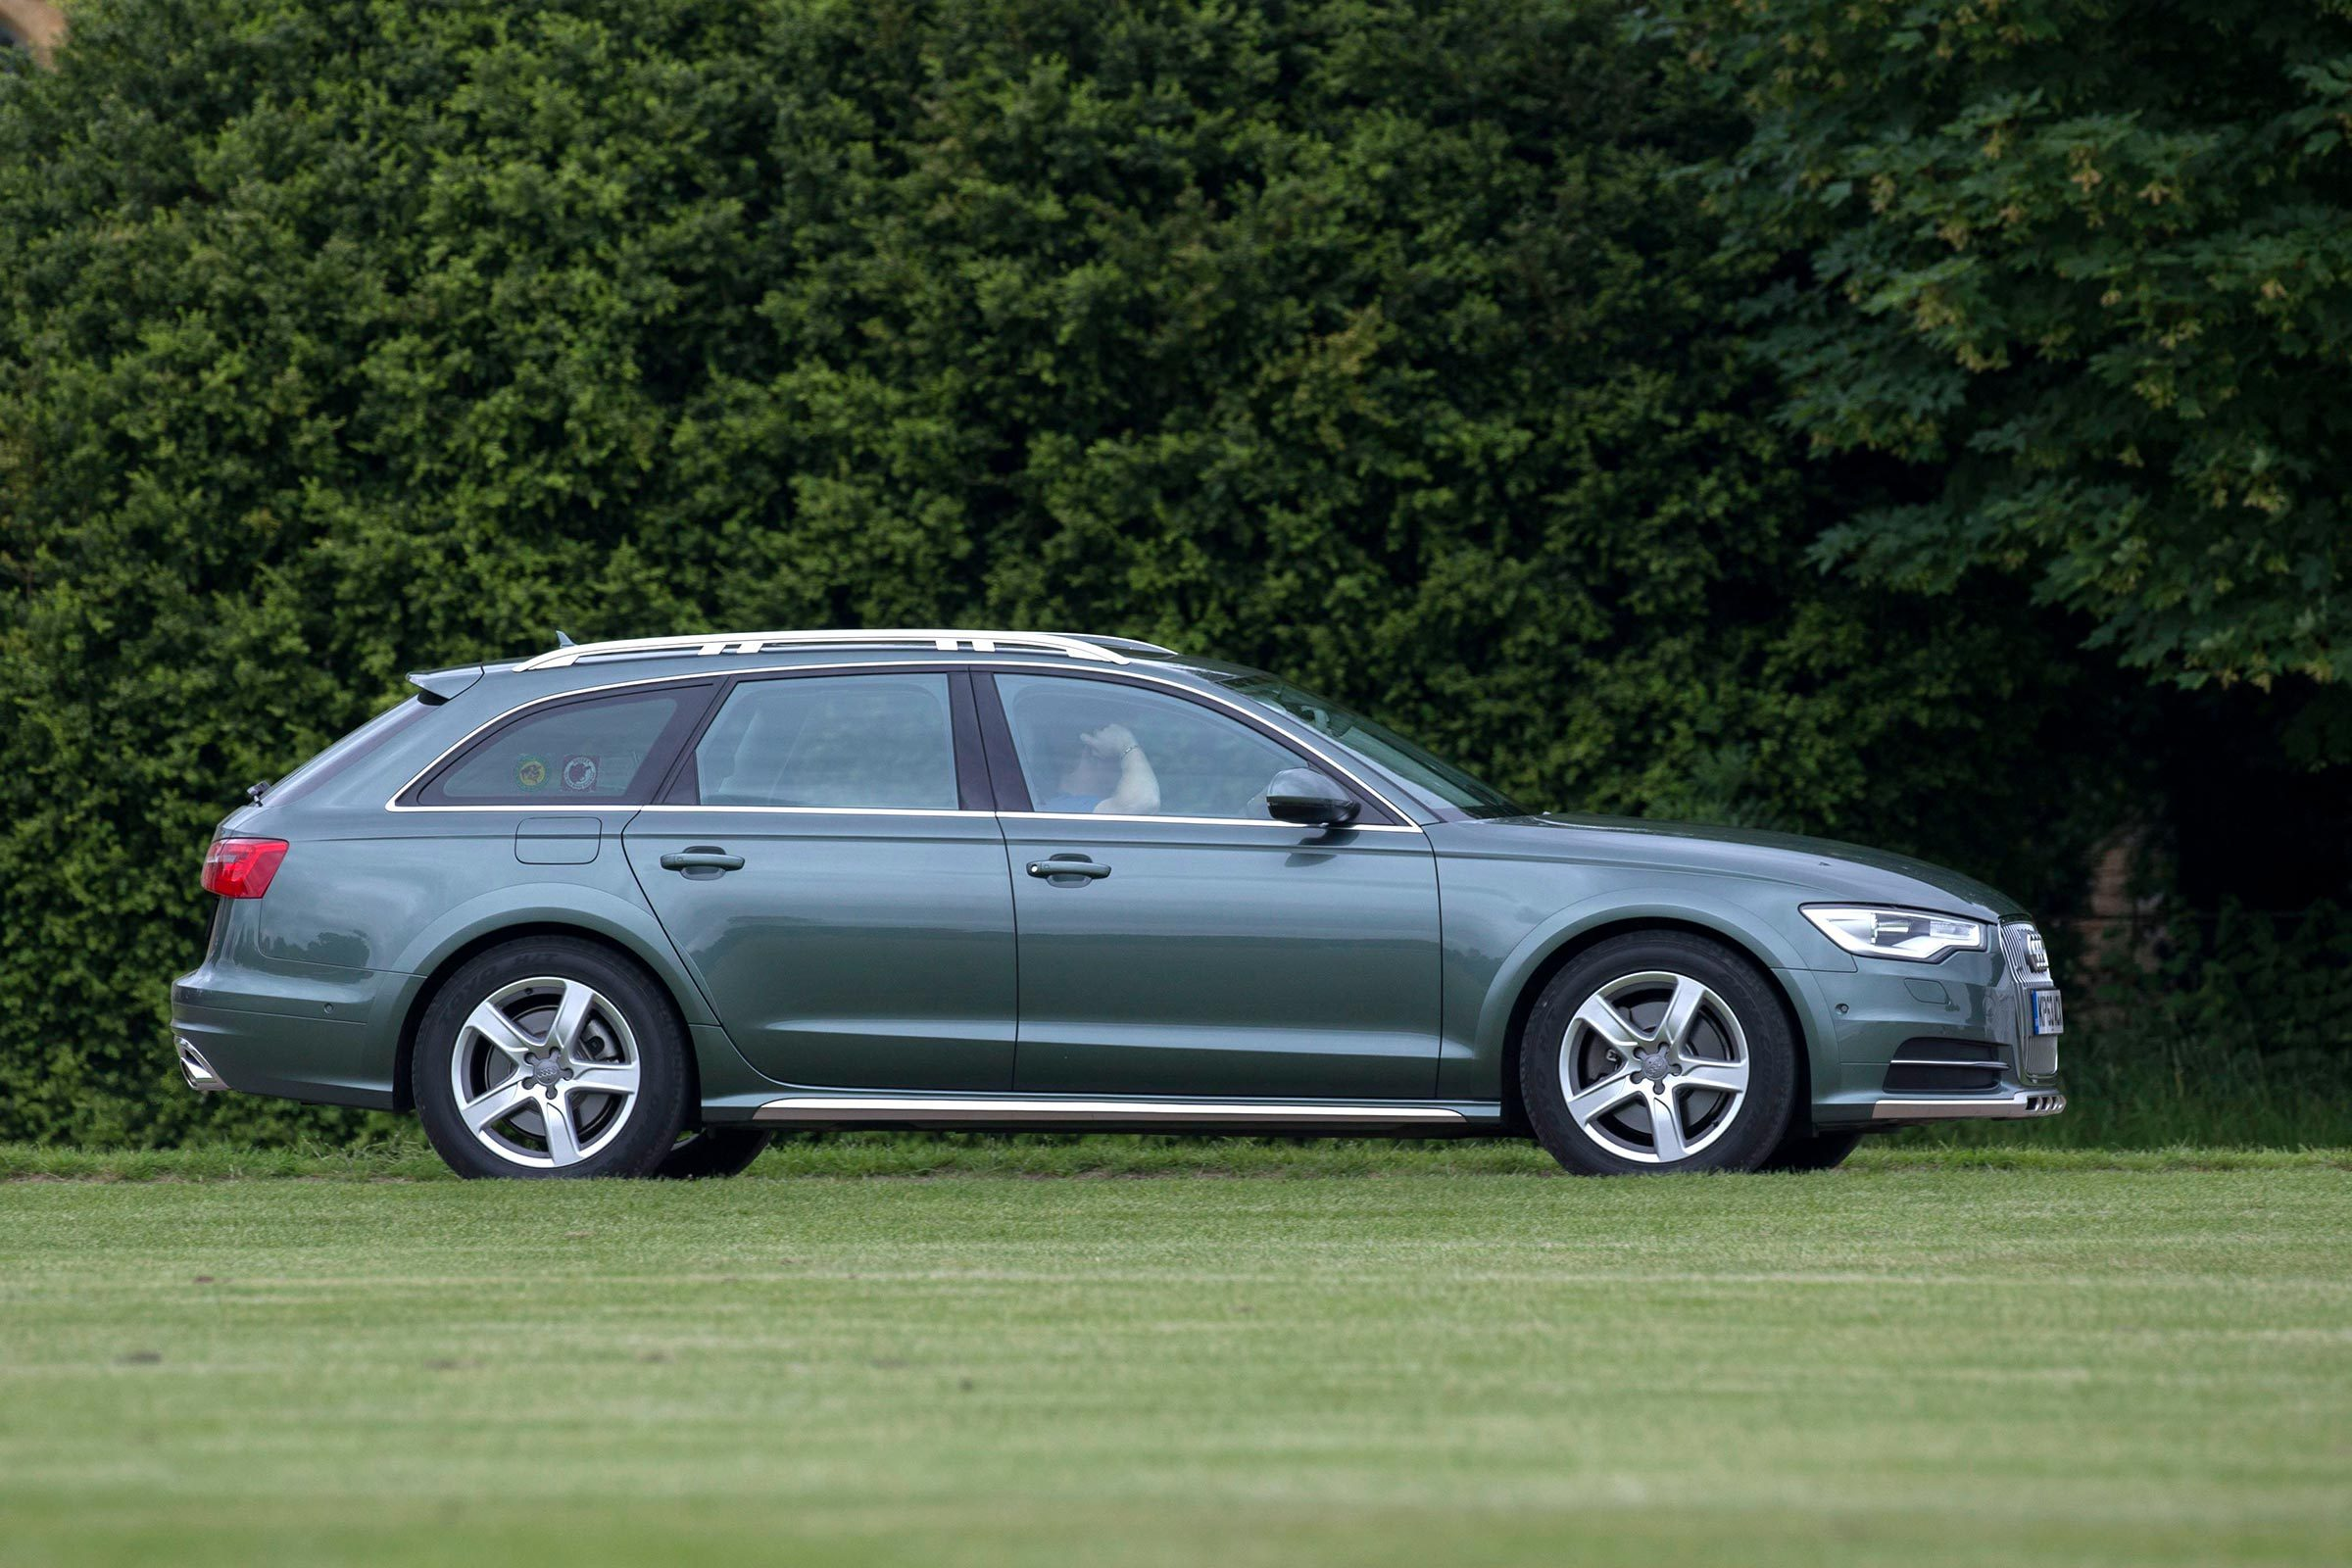 Prince Harry's Audi for sale